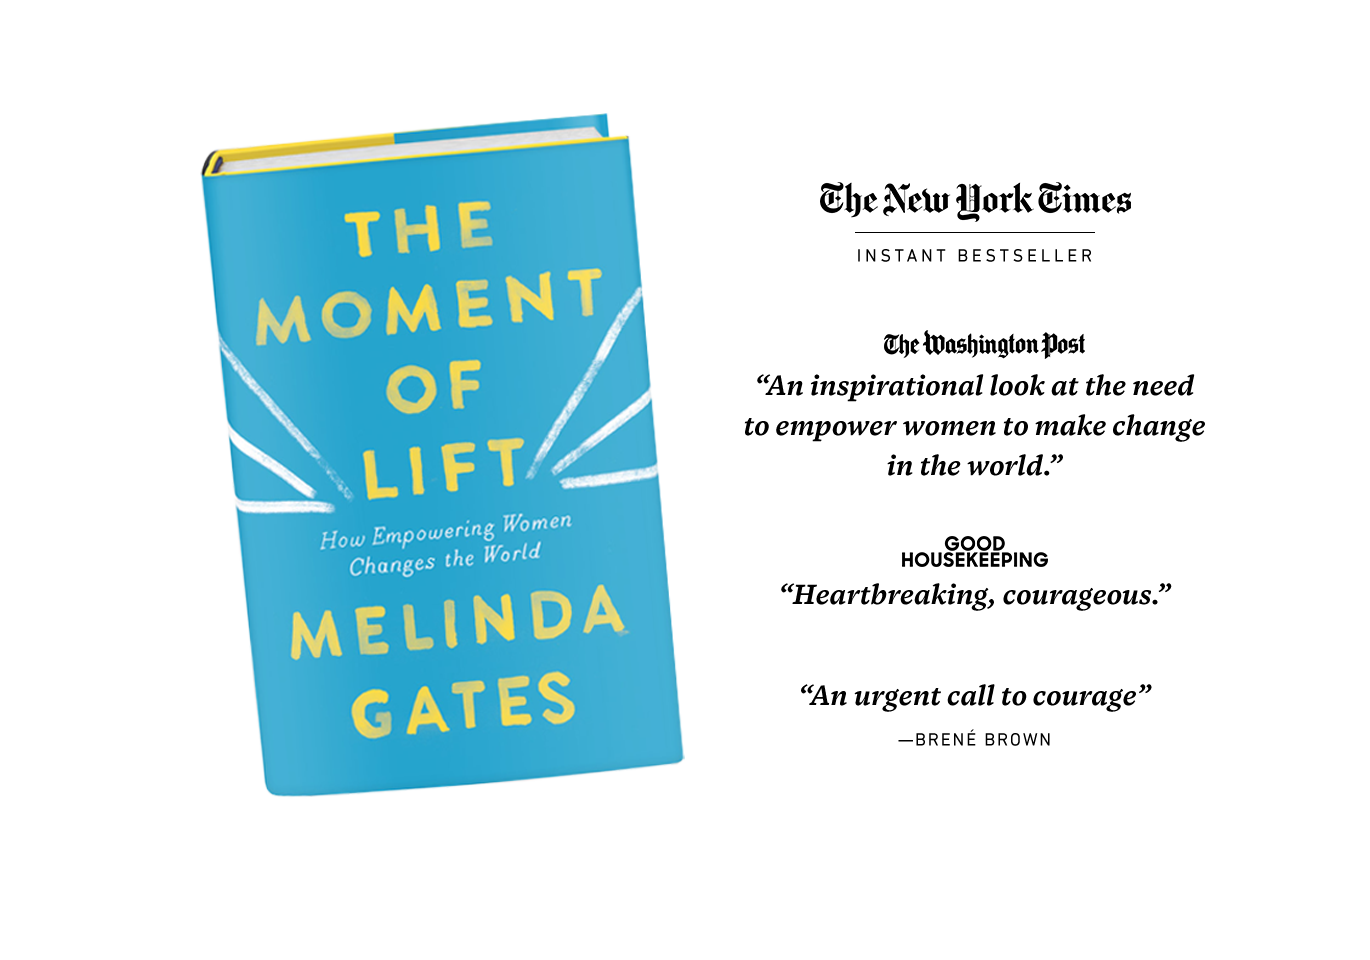 Gates has recently published a book   The Moment of Lift: How Empowering Women Changes the World   .